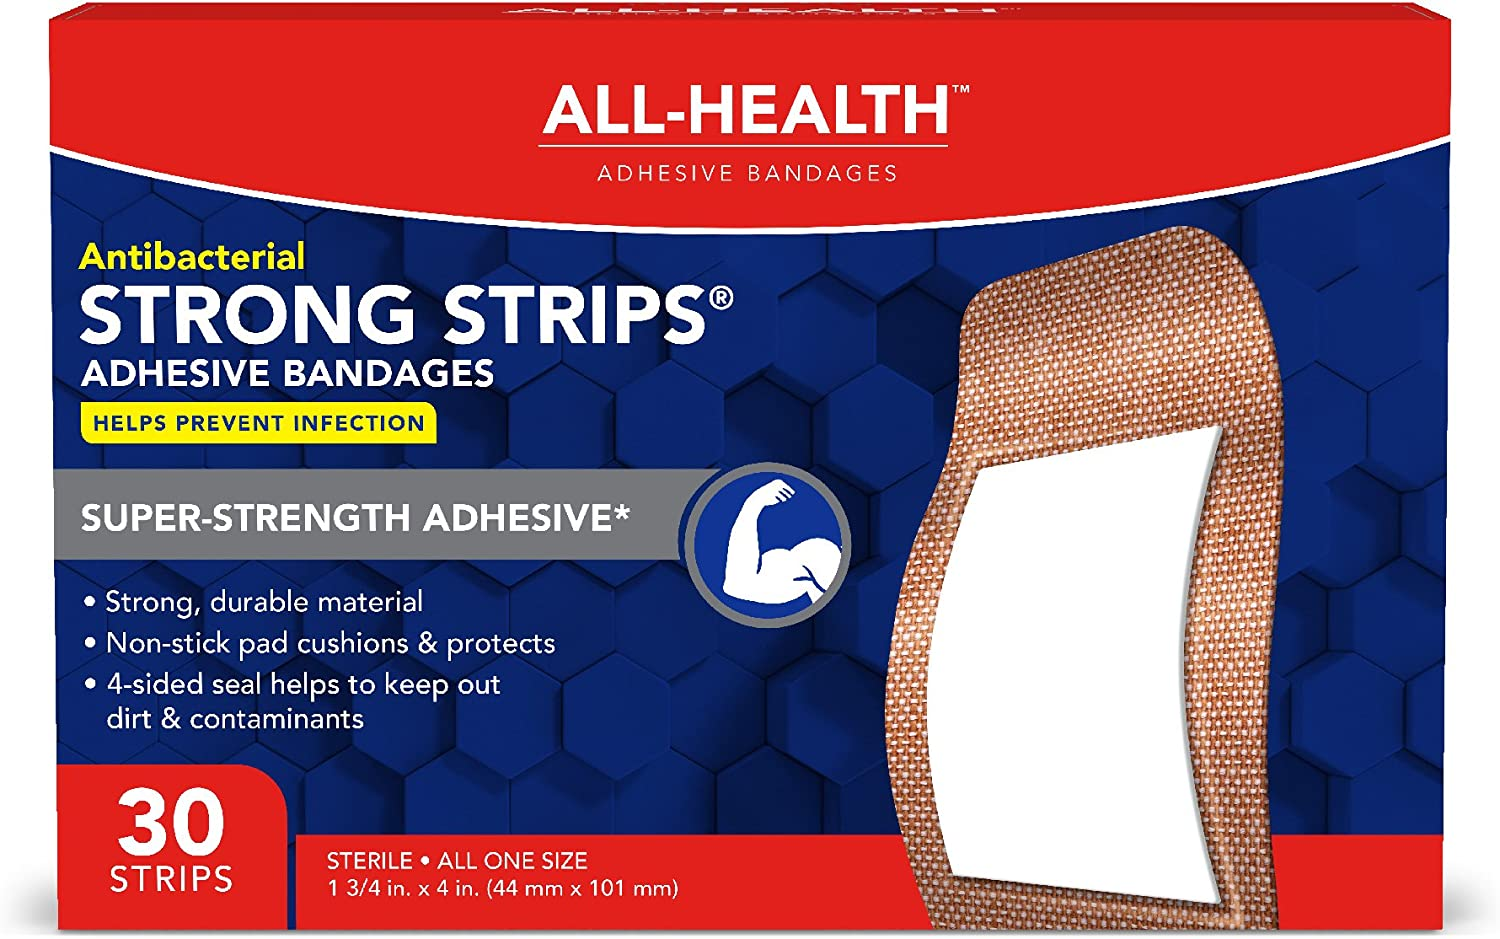 All Health Antibacterial Heavy Fabric Strong Strip Adhesive Bandages, XL 1.75 in x 4 in, 30 ct | Extra Large, Helps Prevent Infection, Durable Protection for First Aid and Wound Care: Health & Personal Care